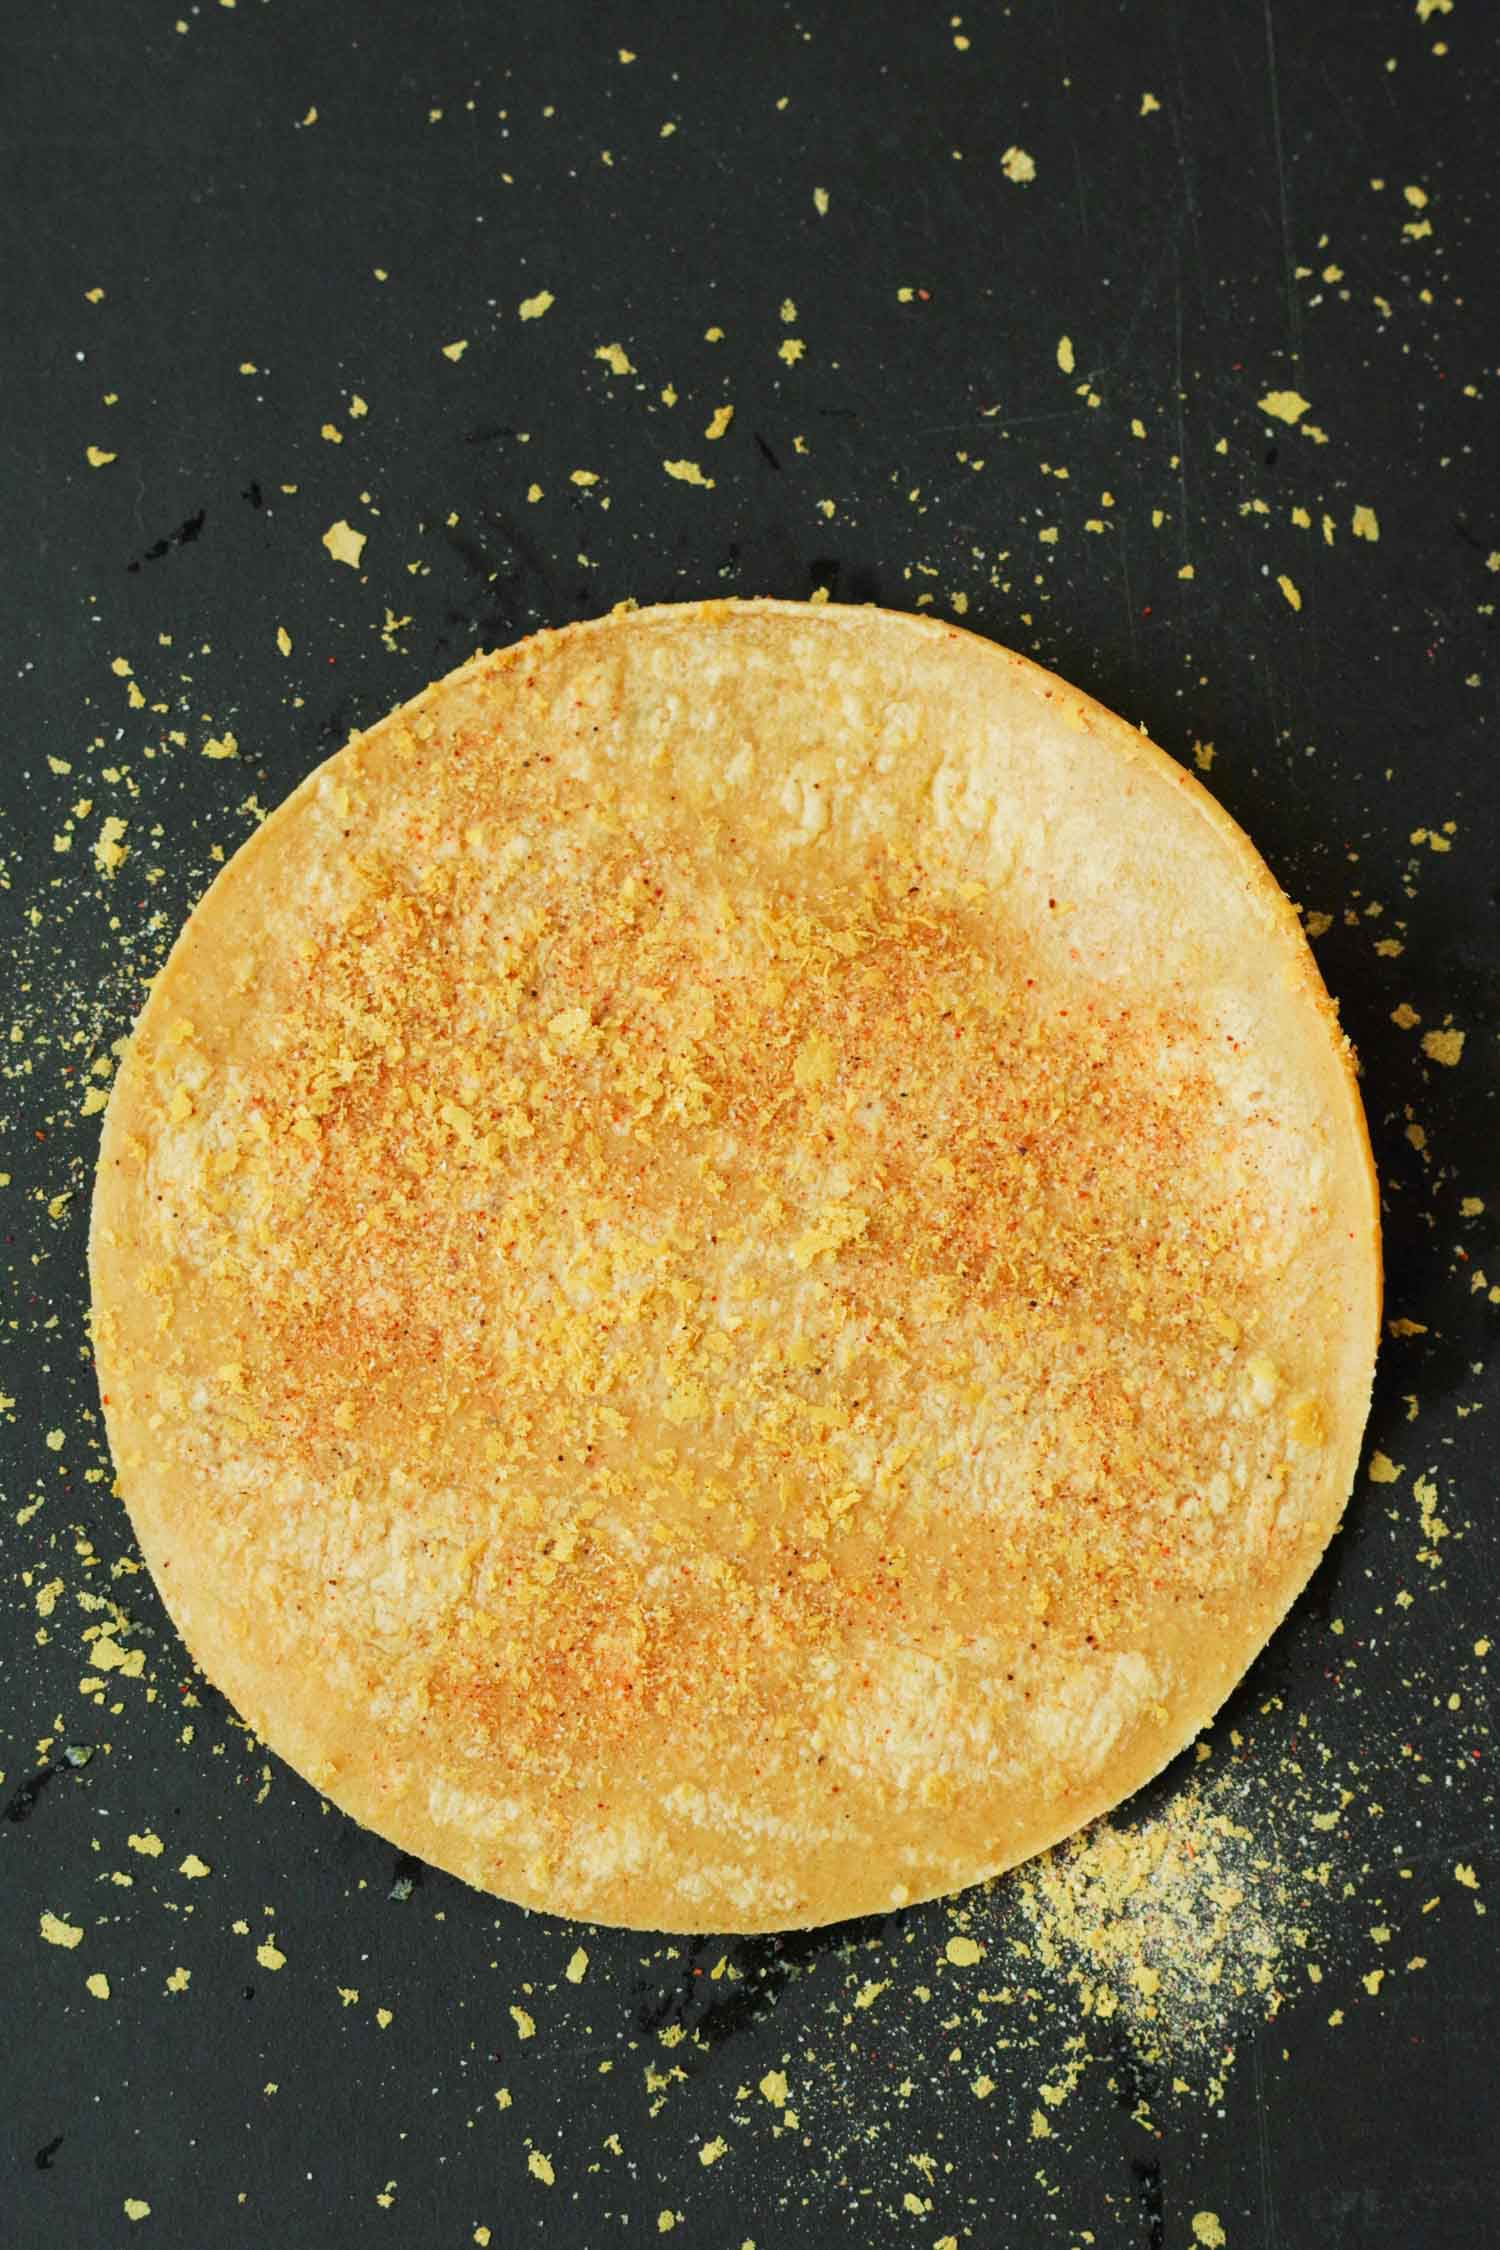 Spiced tortilla ready to cut into triangles for baking chips. By Beautiful Ingredient.